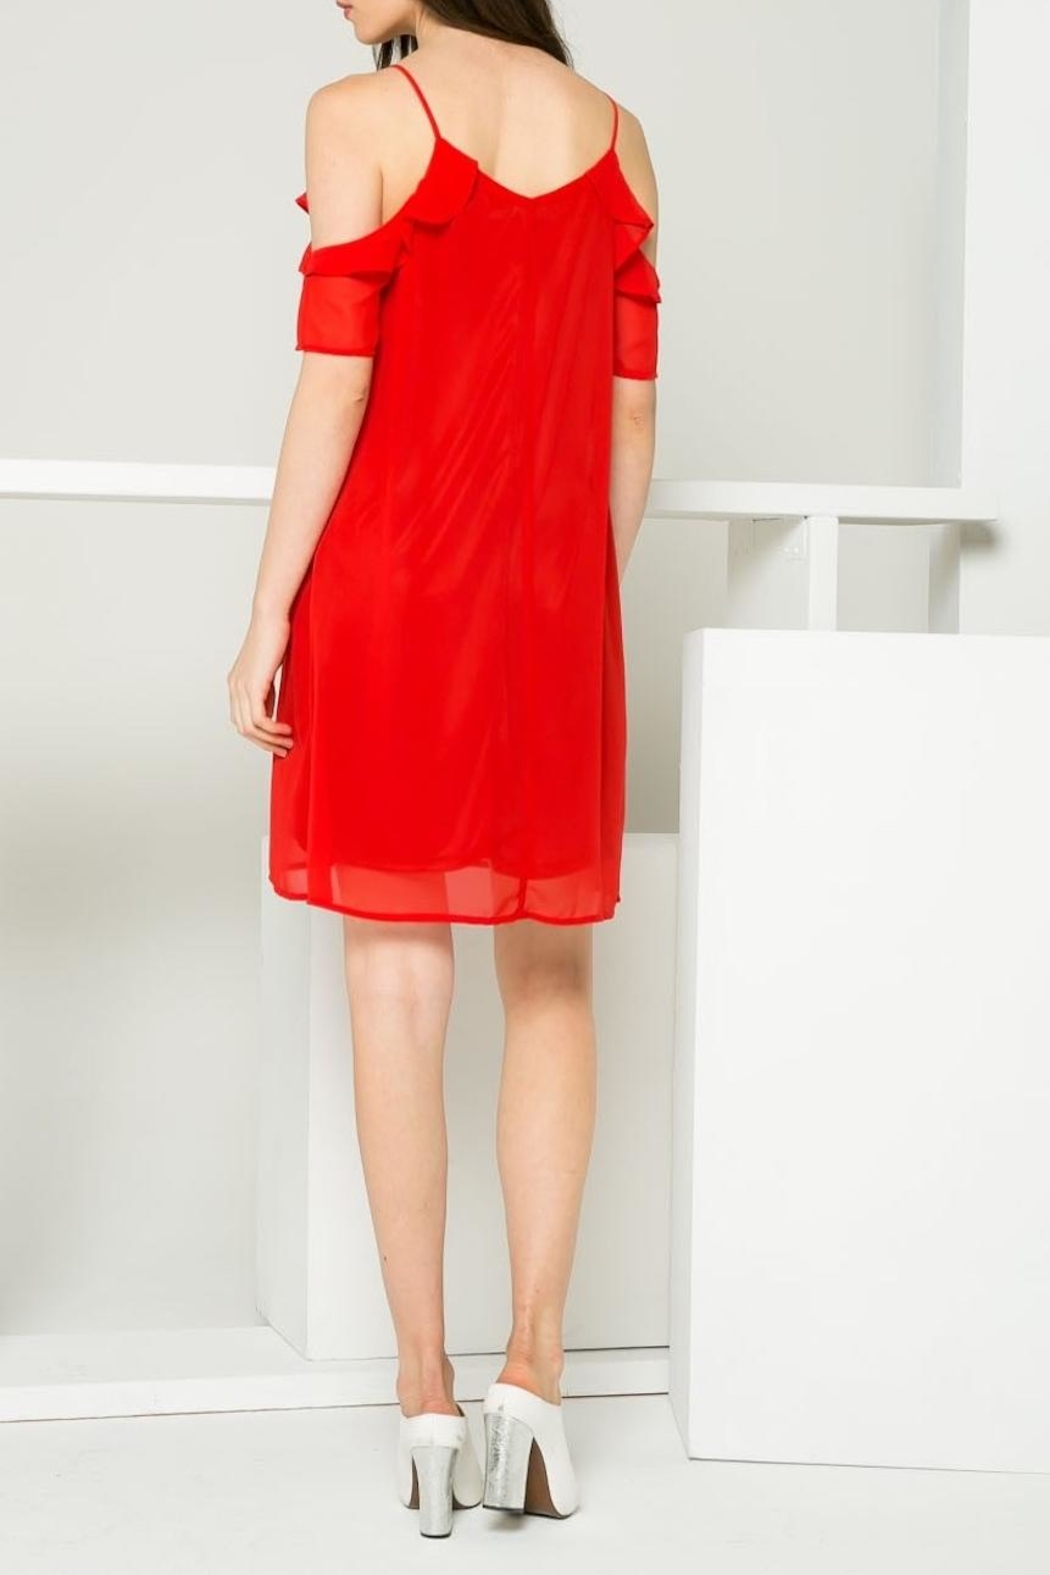 THML Clothing Red Ruffle Dress - Back Cropped Image